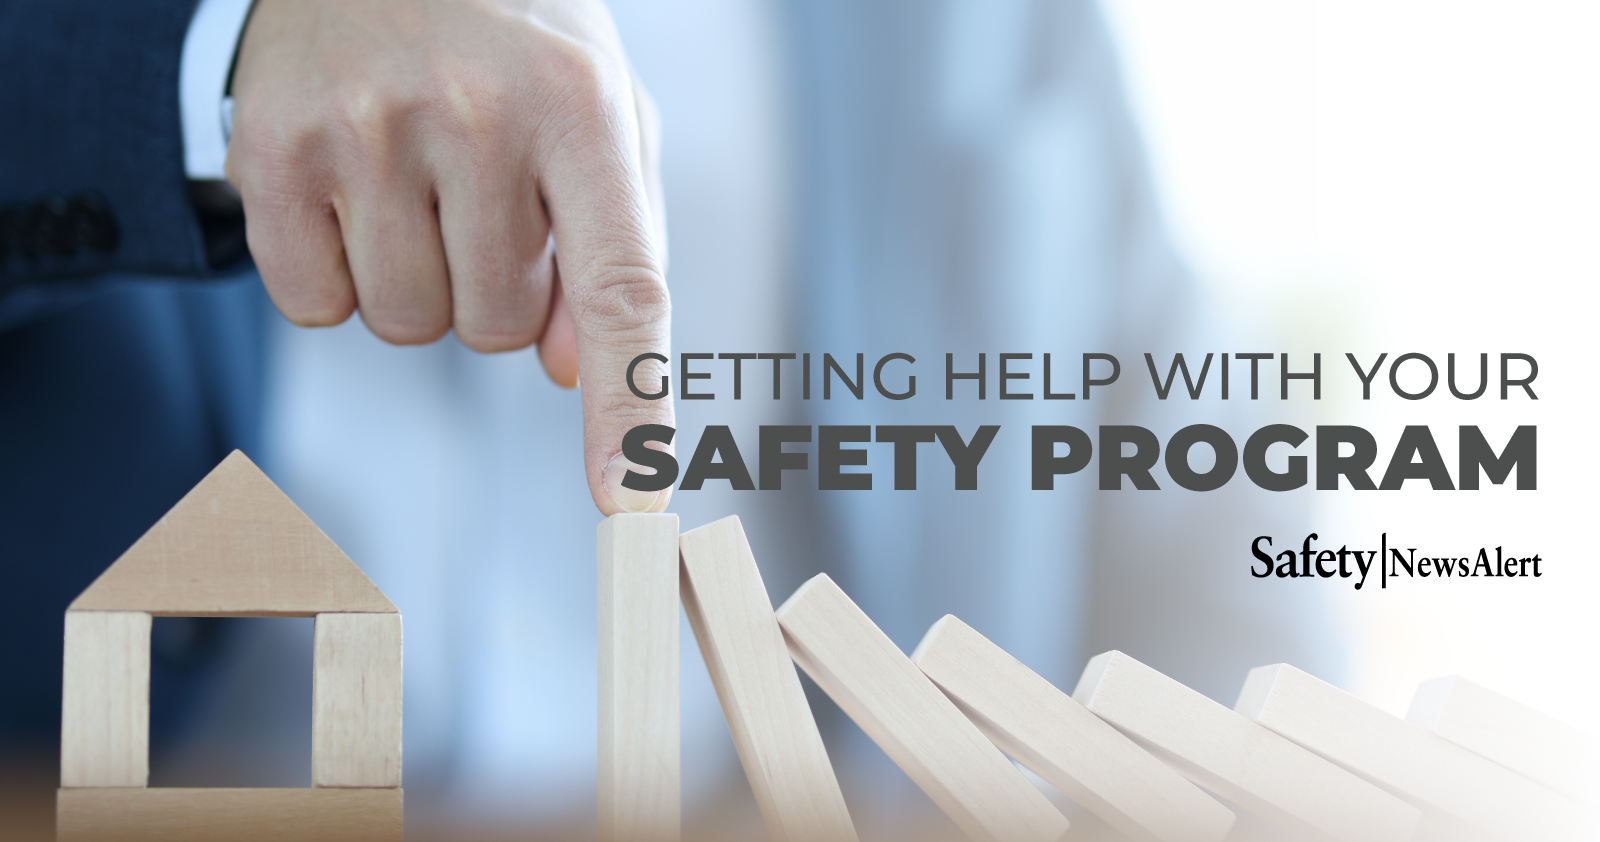 Getting Help With Your Safety Program